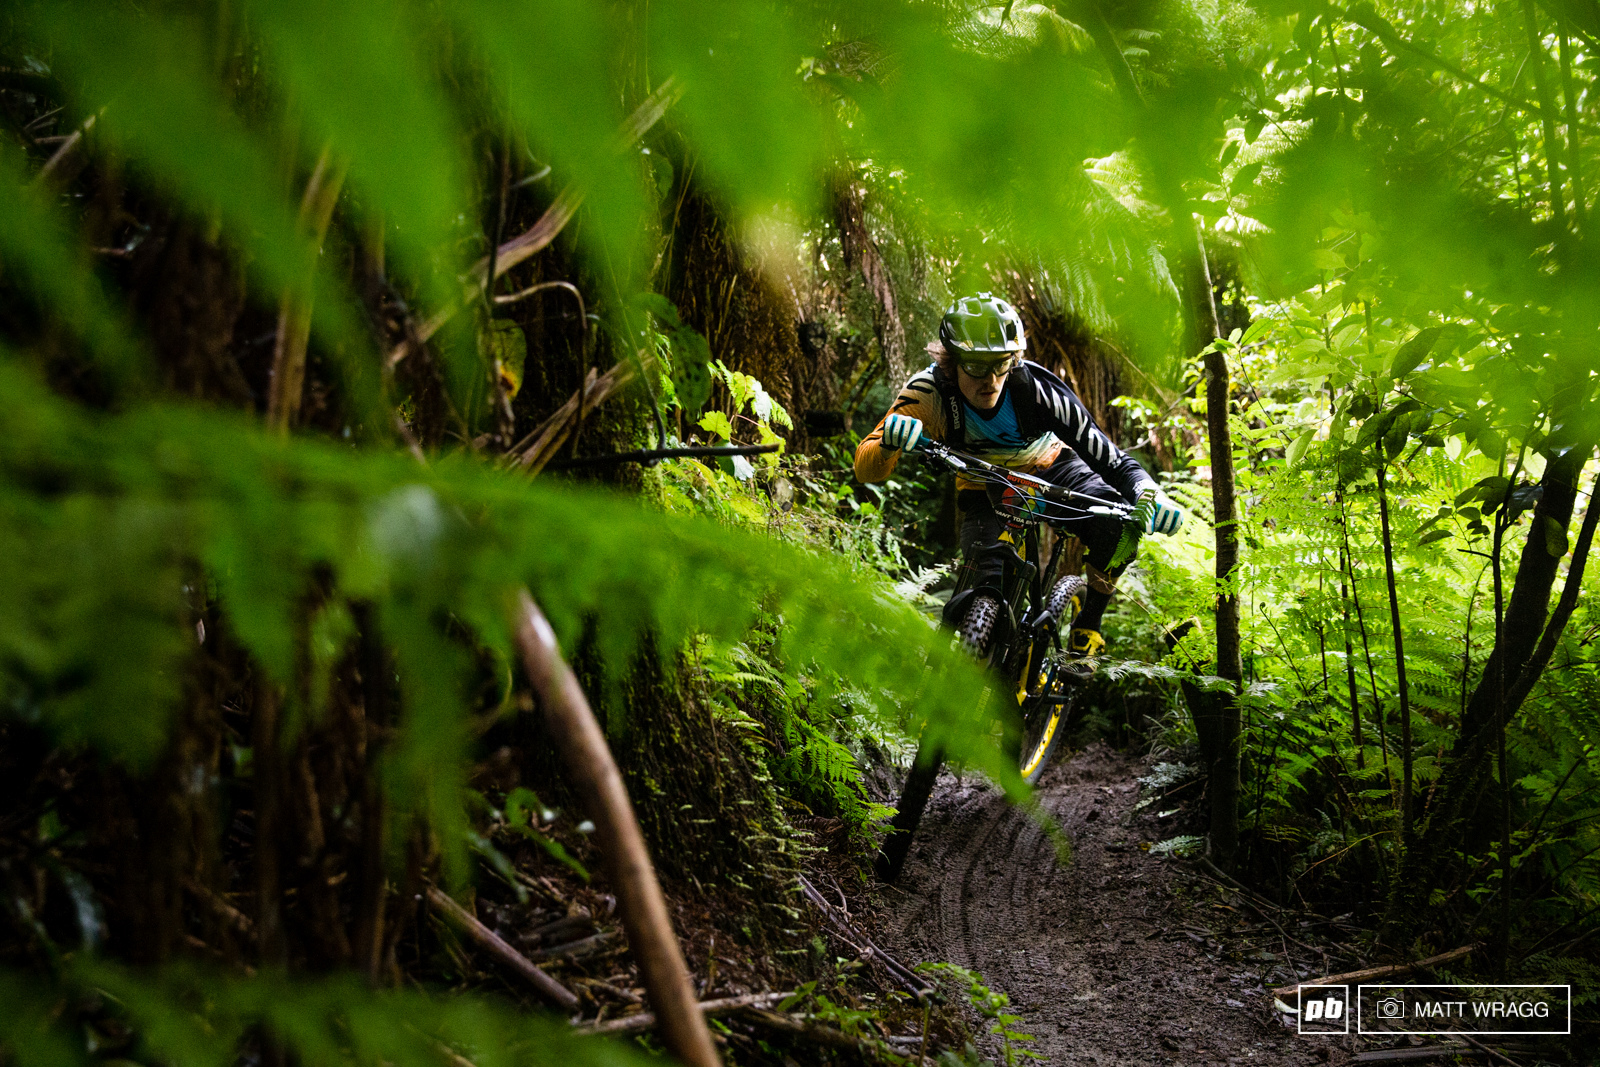 Joe Barnes has been looking fast and comfortable in the roots and mud of Rotorua all week.